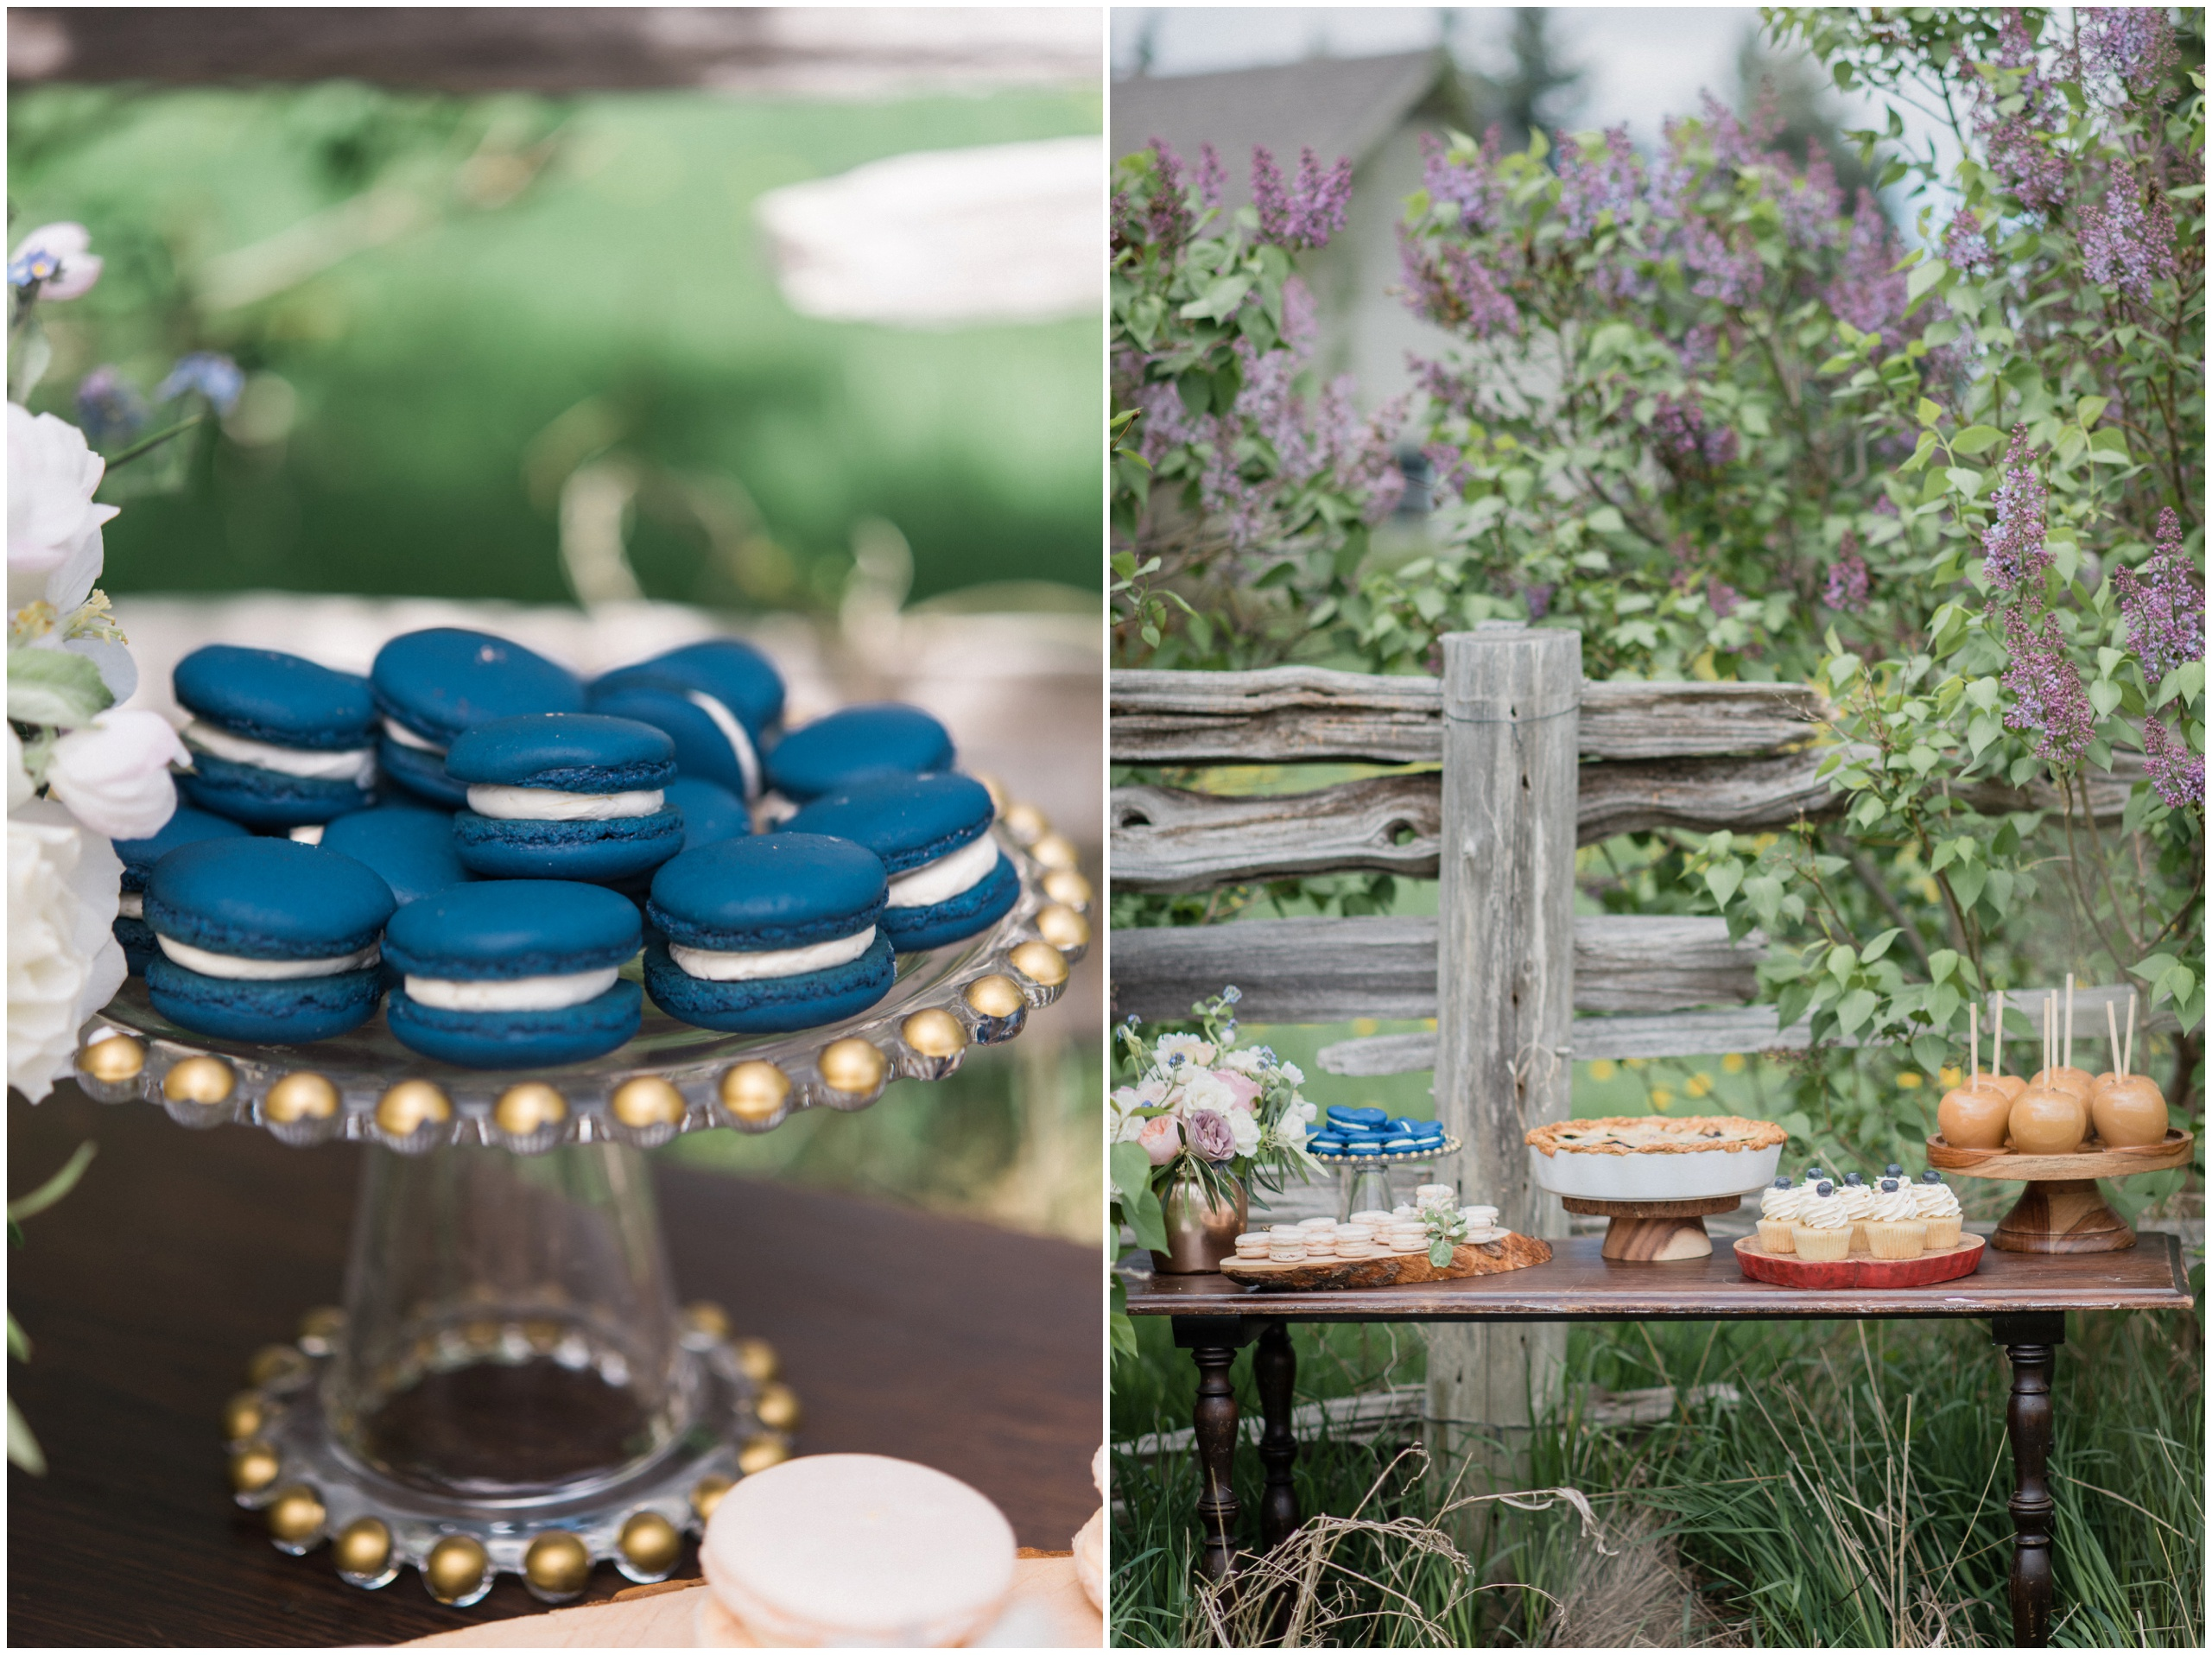 Wedding Inspiration: Navy blue macarons; wedding sweet table with caramel apples, pie and more tasty treats!